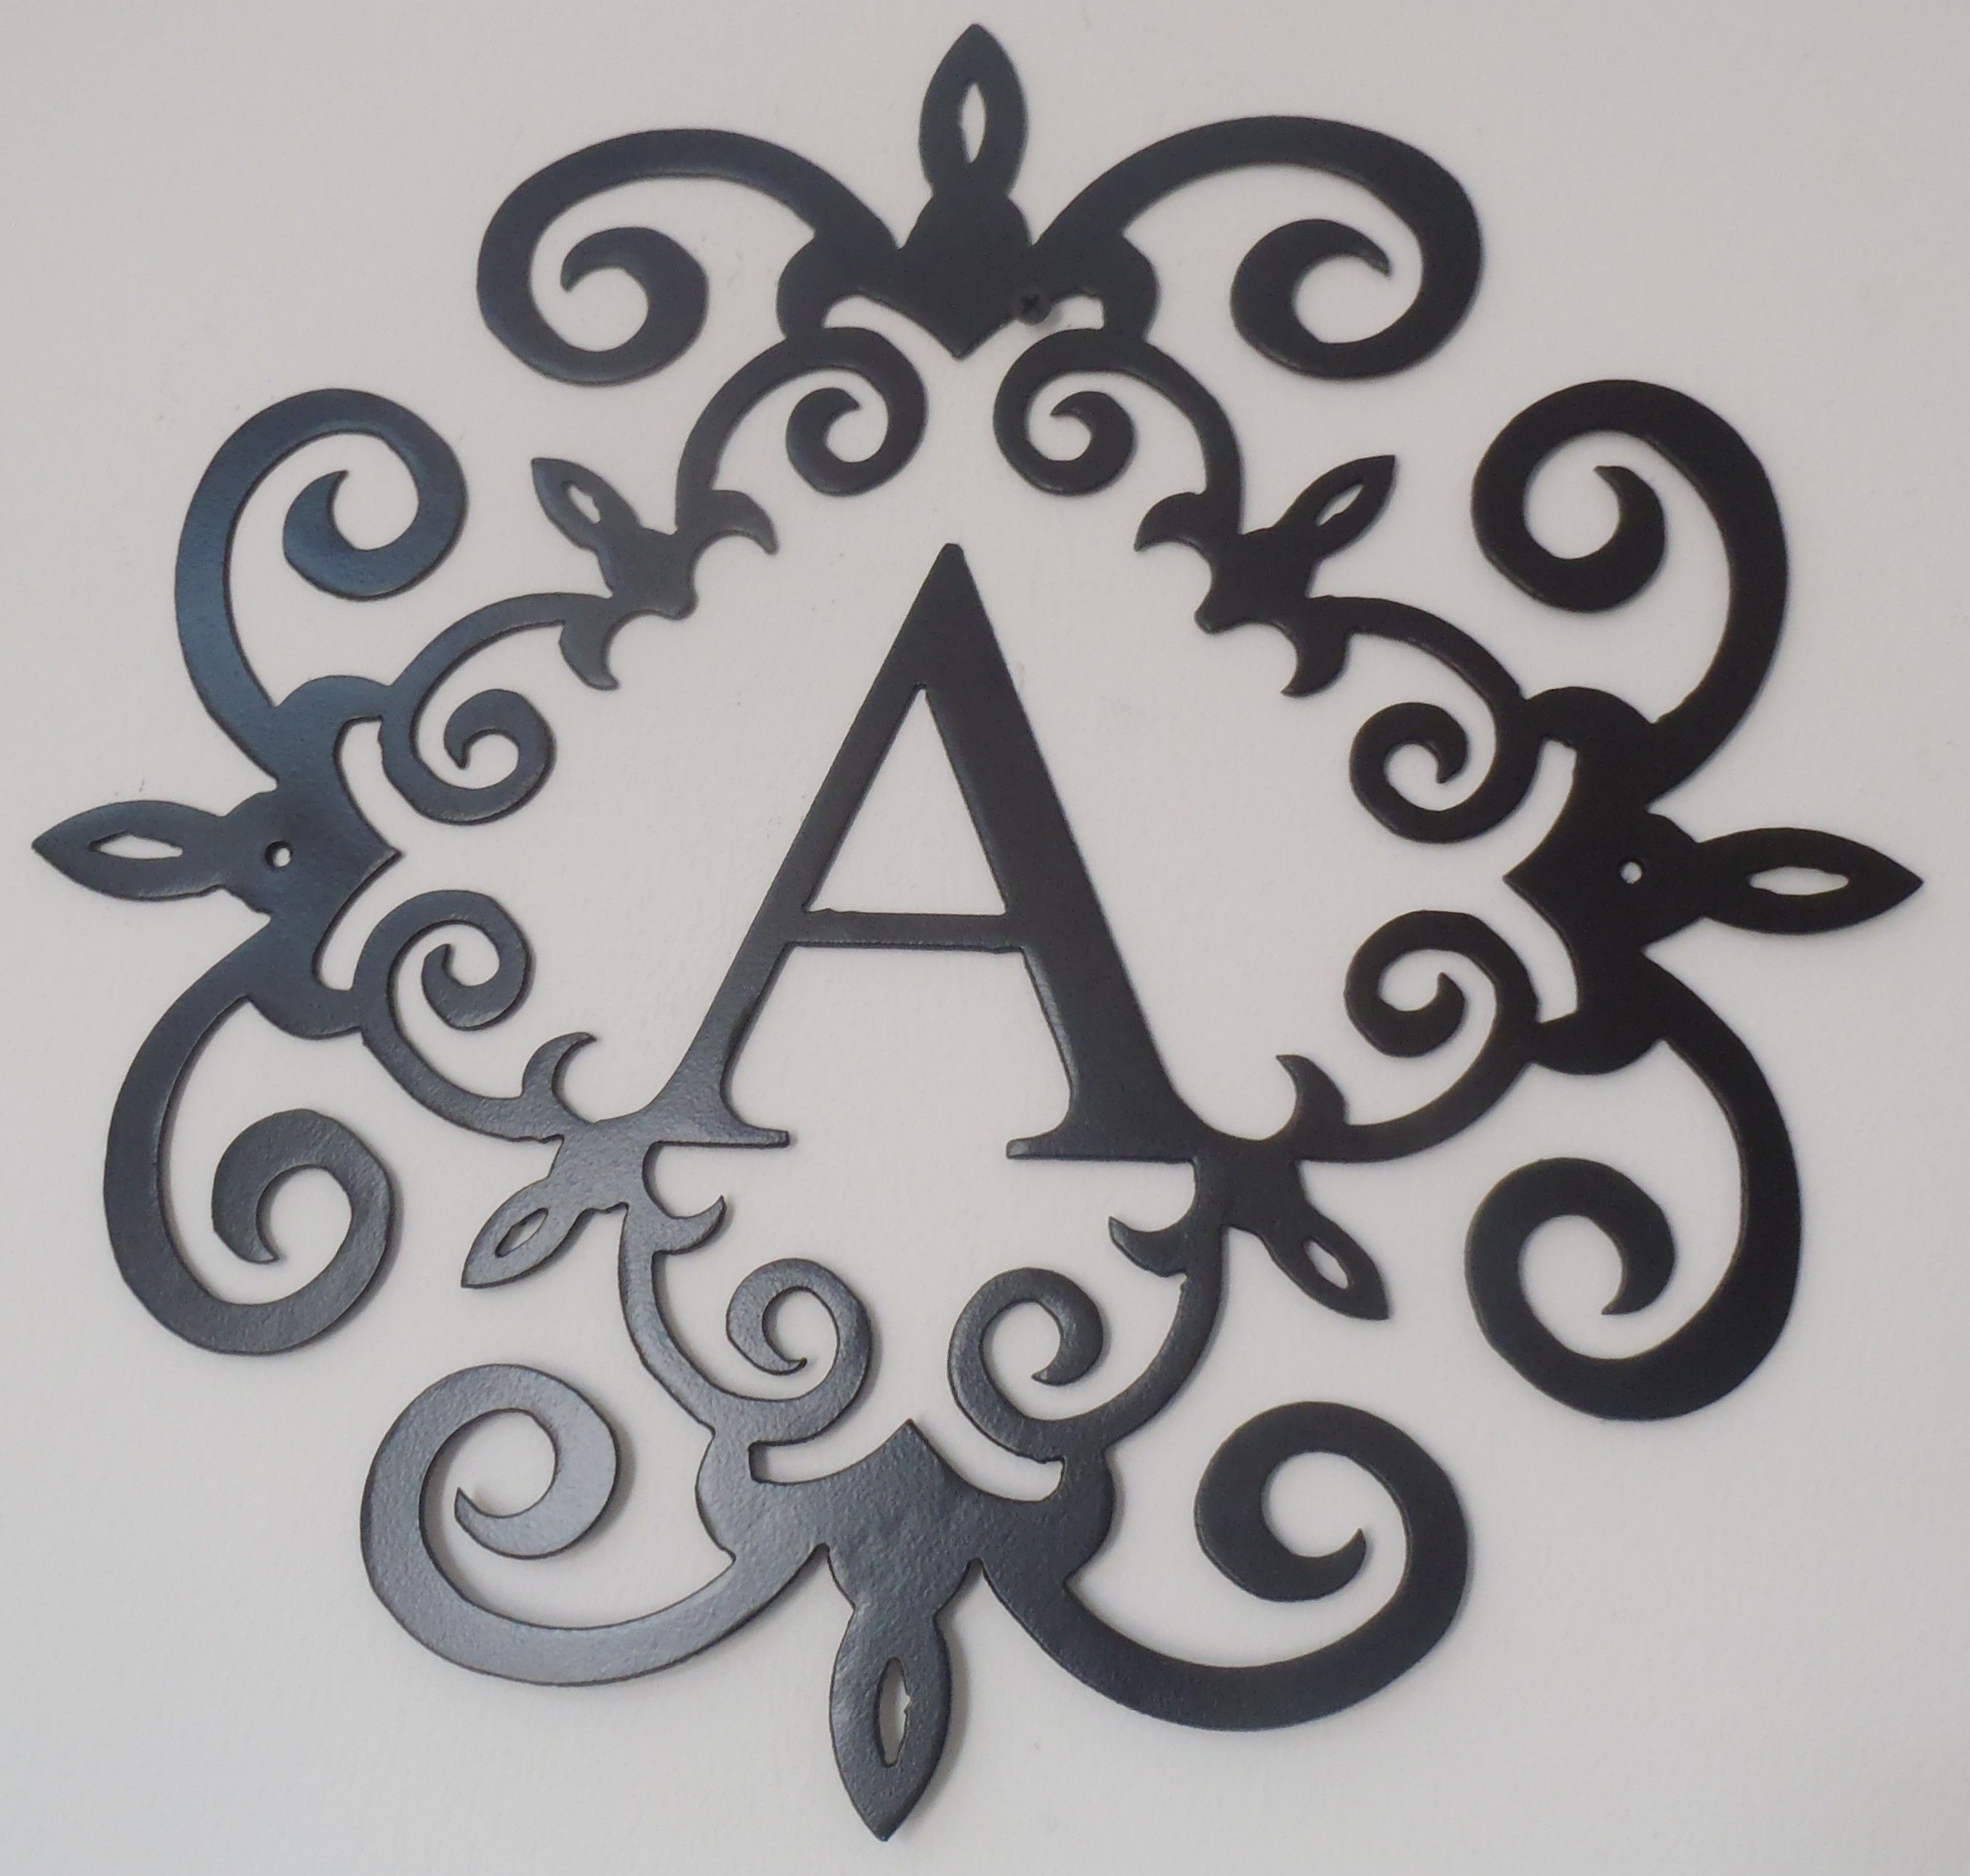 Metal art decor, wall art from ajd designs inc. Family initial, Monogram inside a Metal Scroll with A ...